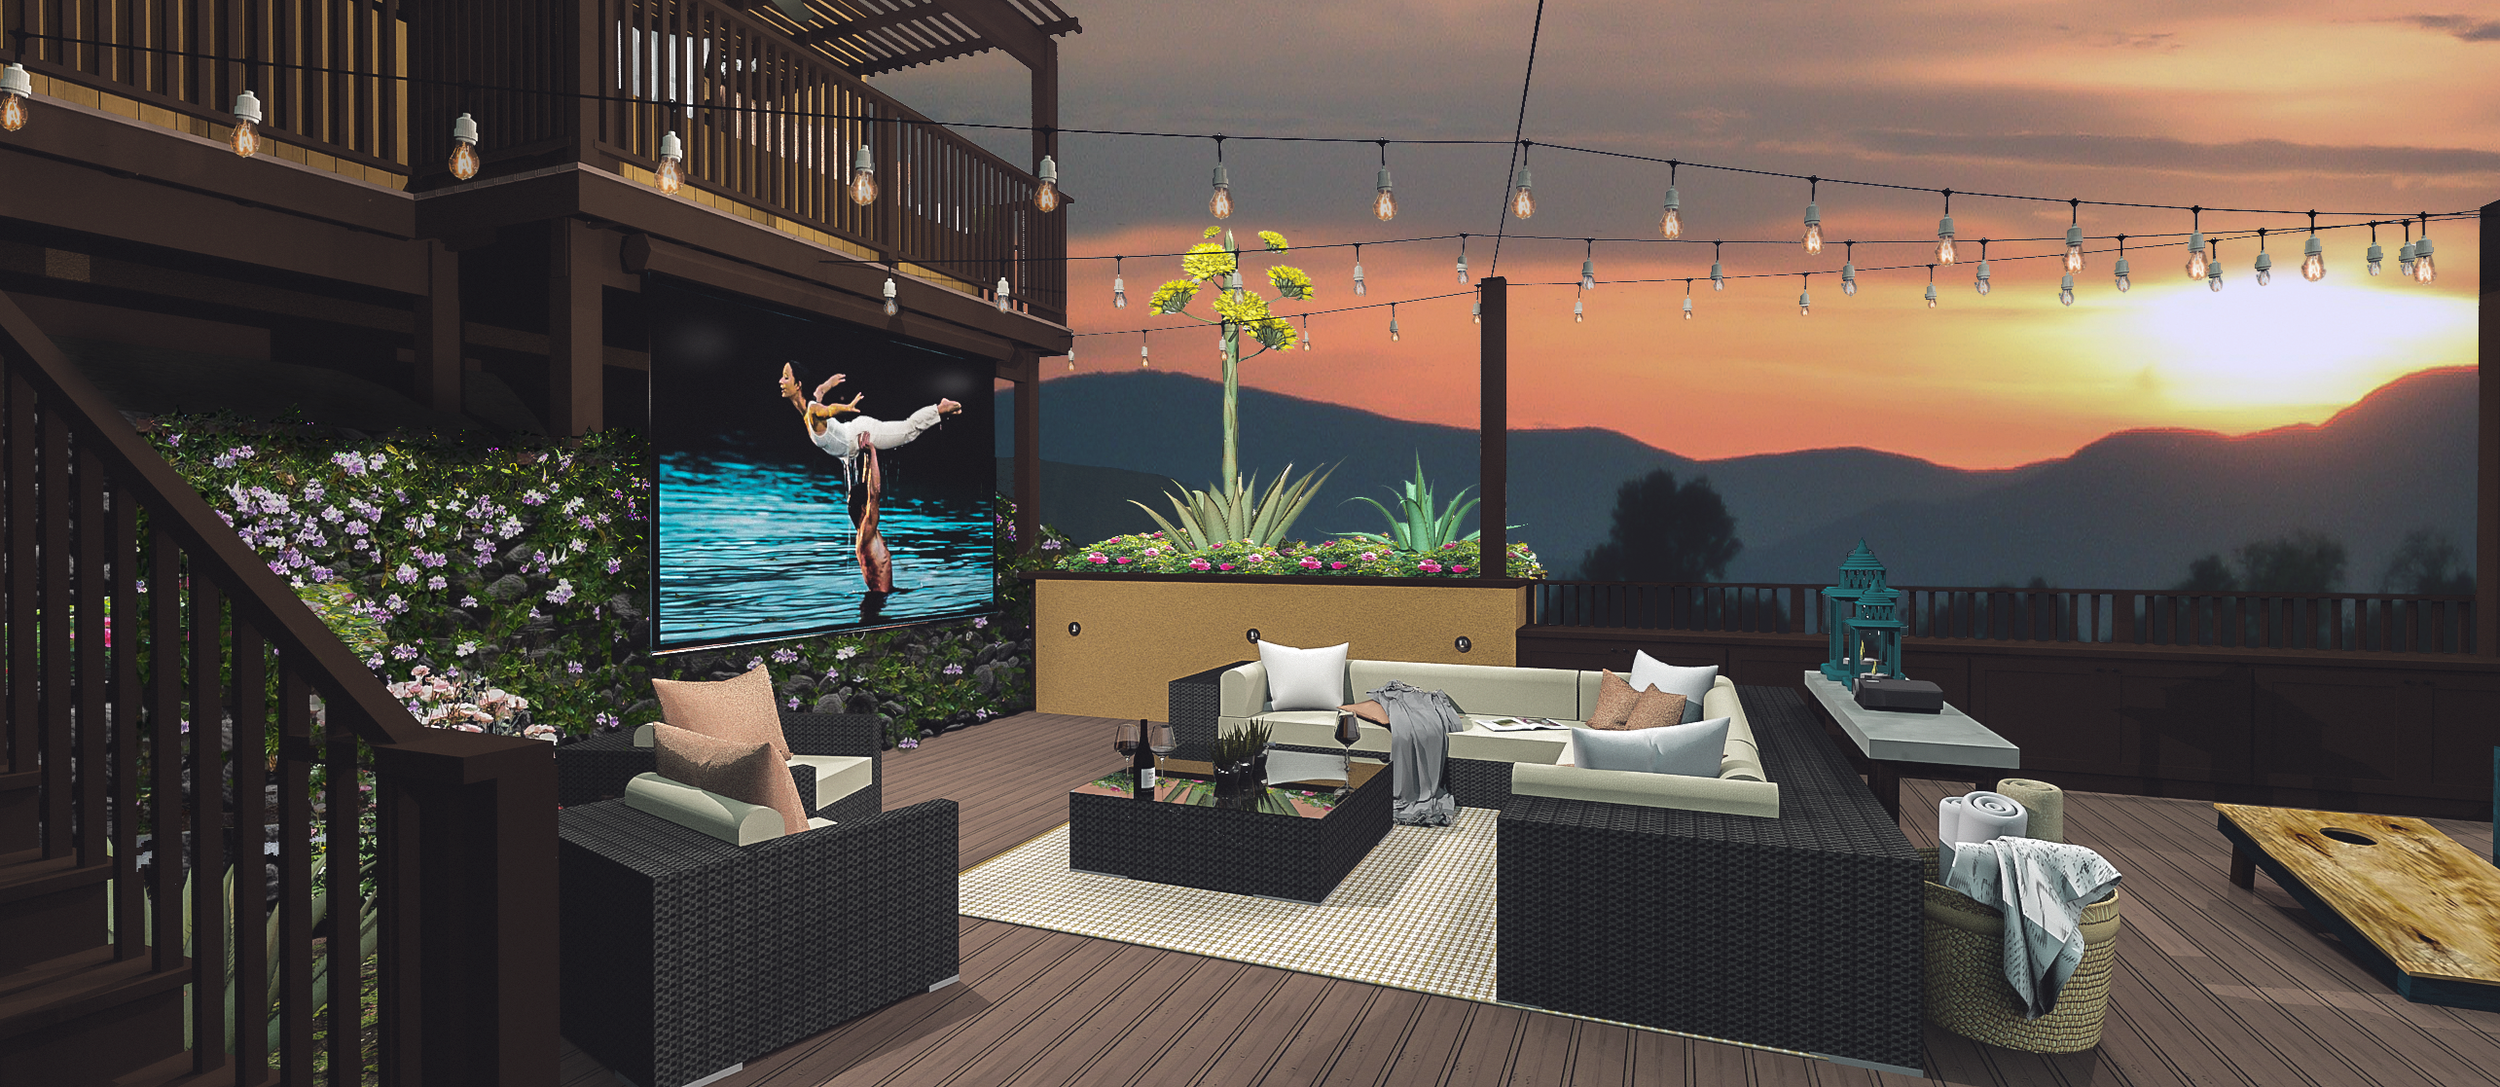 California Deck Rendering | Designed by MRH Interiors.png